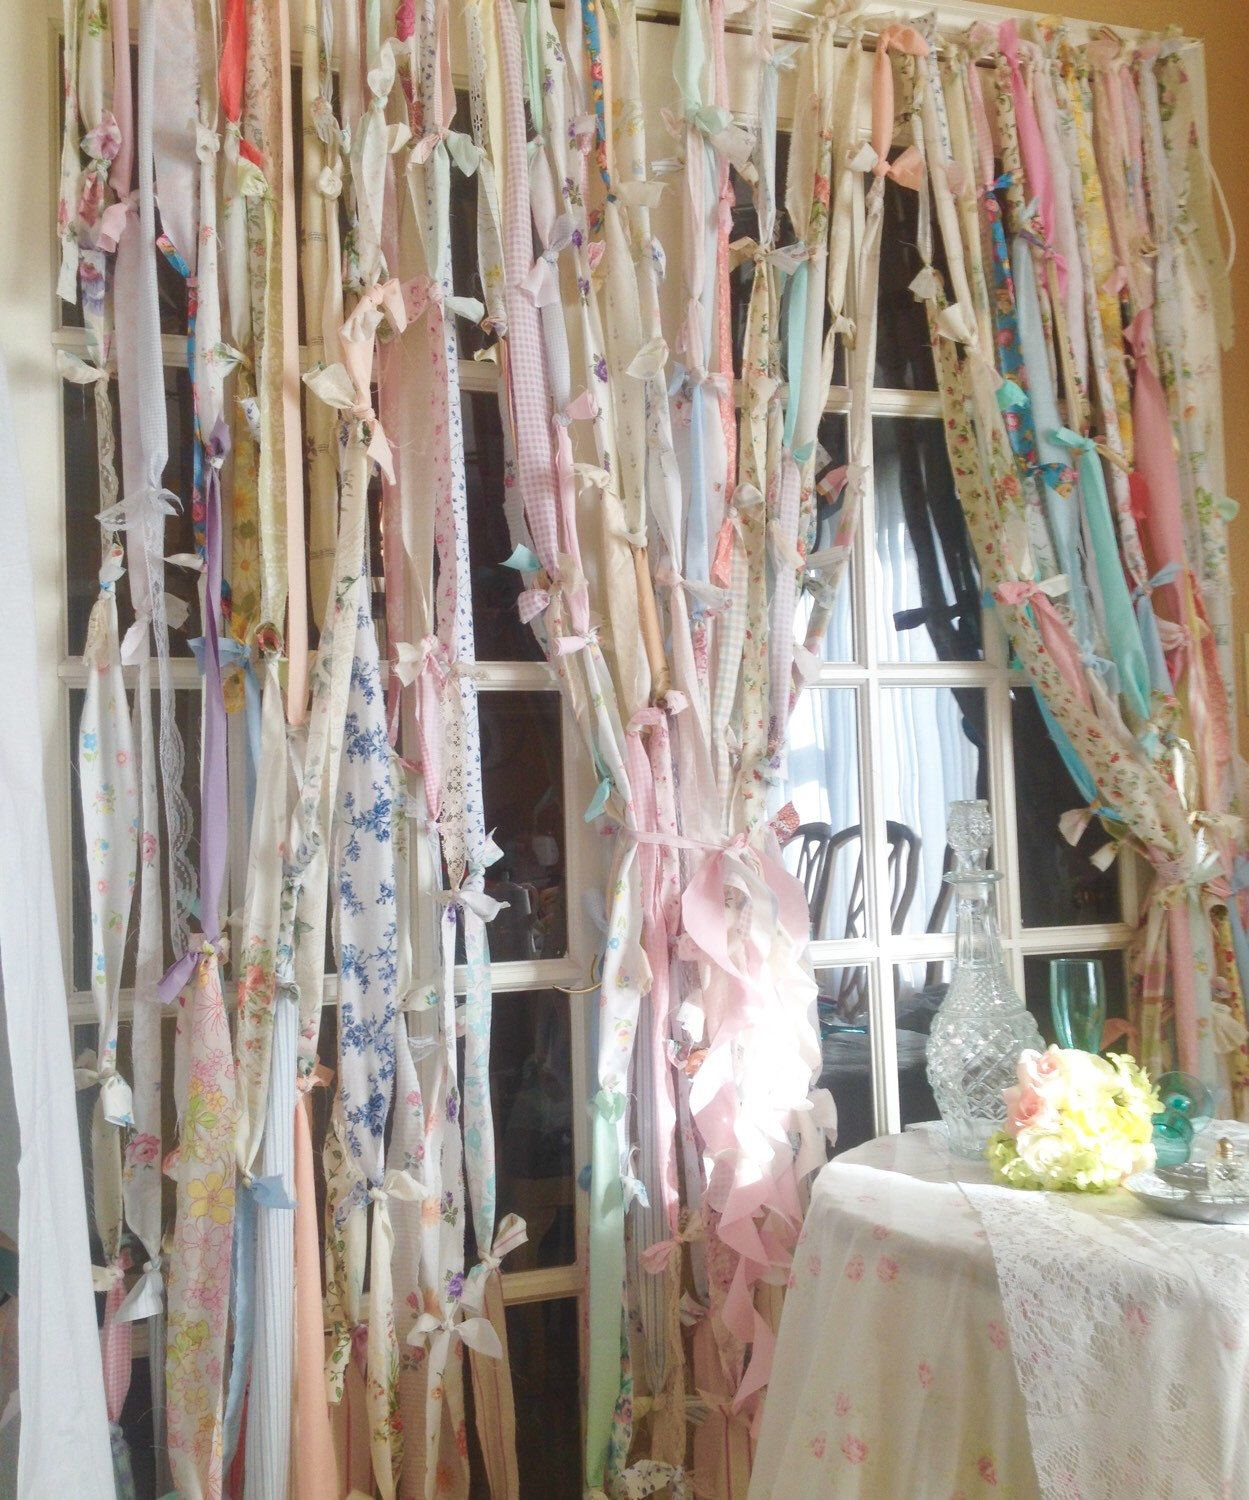 Boho window curtains - Rag Curtains Boho Garland Rustic Boho Curtain Shabby Chic Curtain Ribbon Curtain Wedding Decor Gypsyville 7